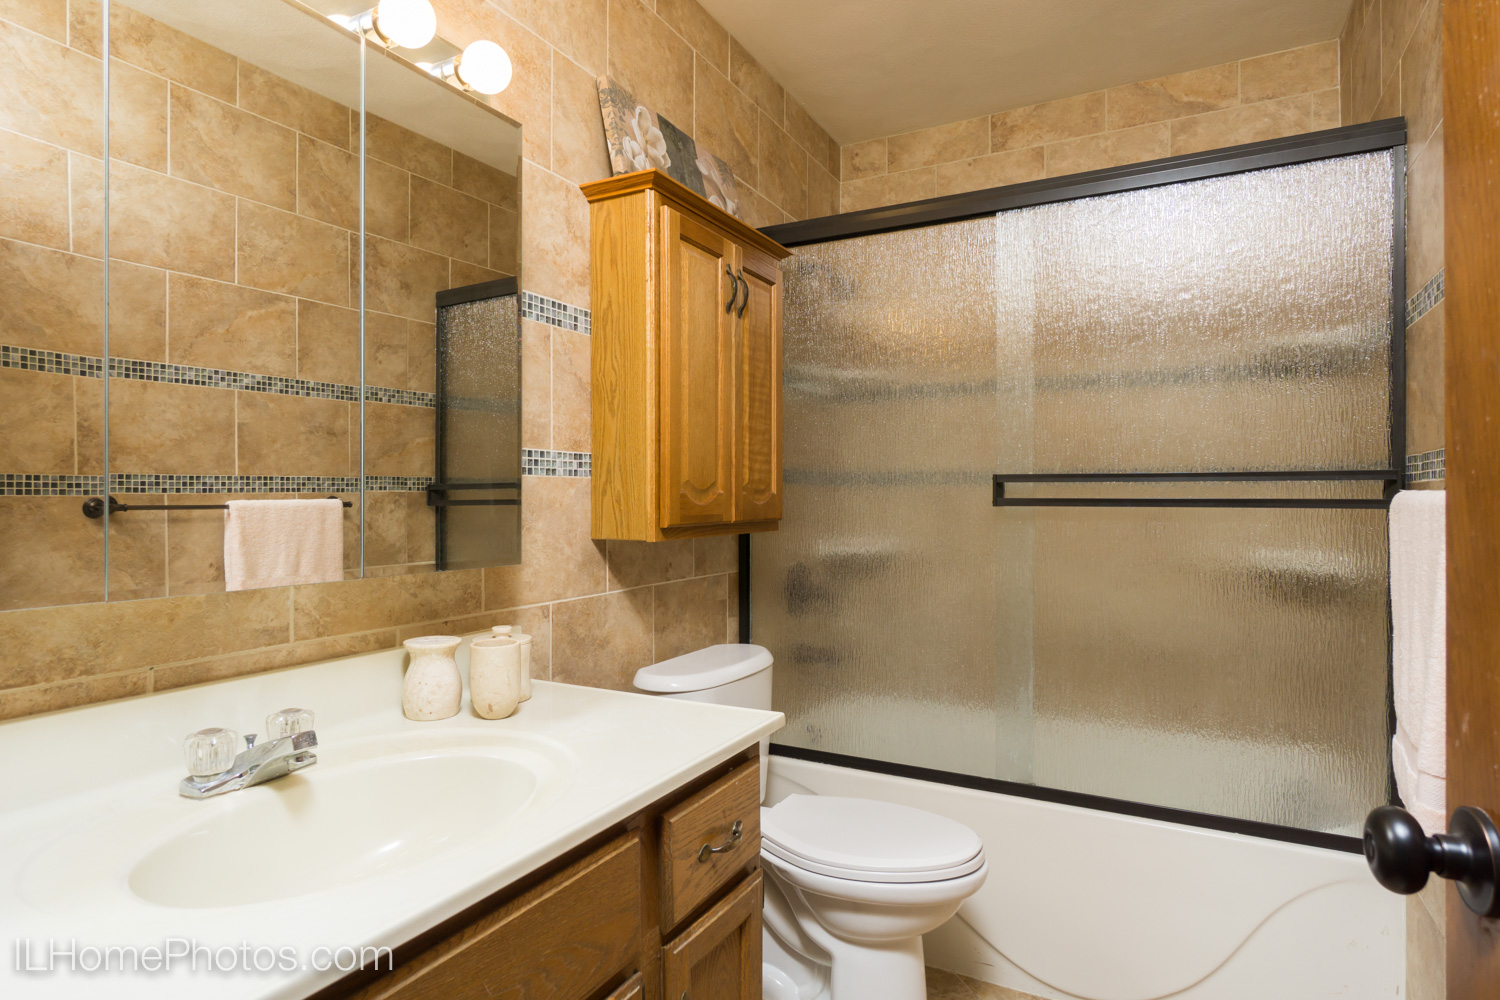 Interior bathroom photograph for real estate in Dunlap, IL :: Illinois Home Photography by Michael Gowin, Lincoln, IL